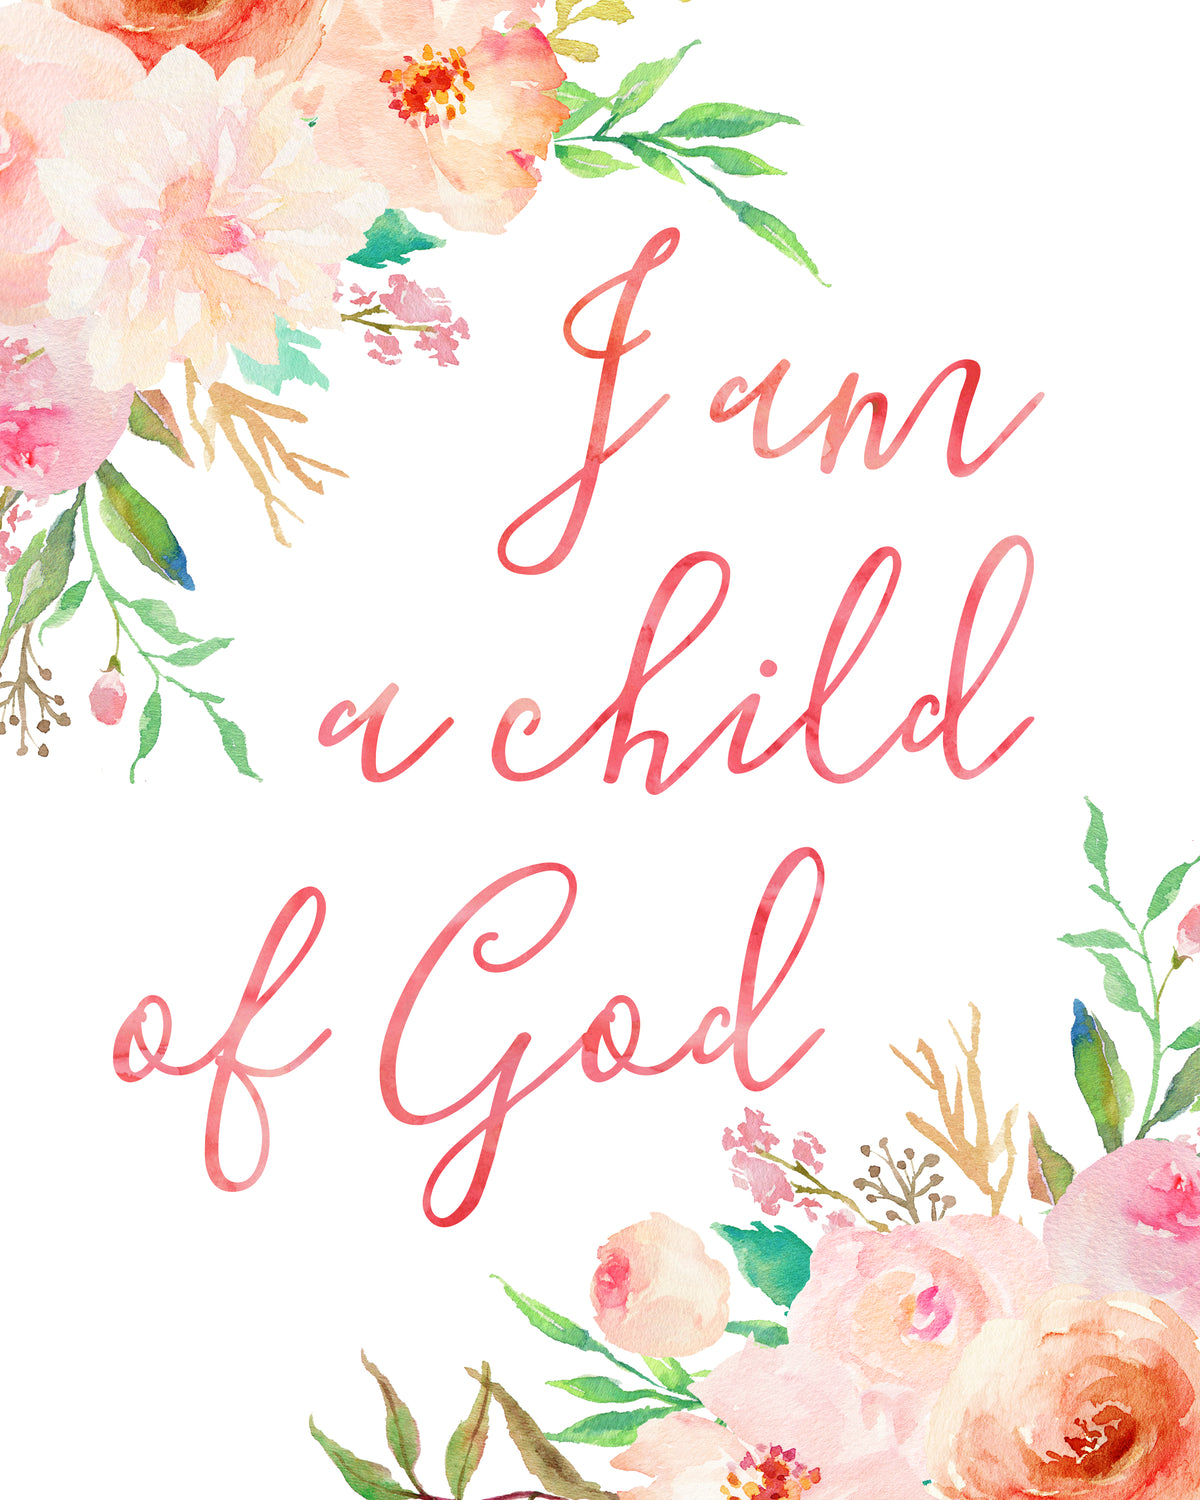 graphic about I Am a Child of God Printable called I am a boy or girl of God - Nursery Artwork by way of Adoren Studio